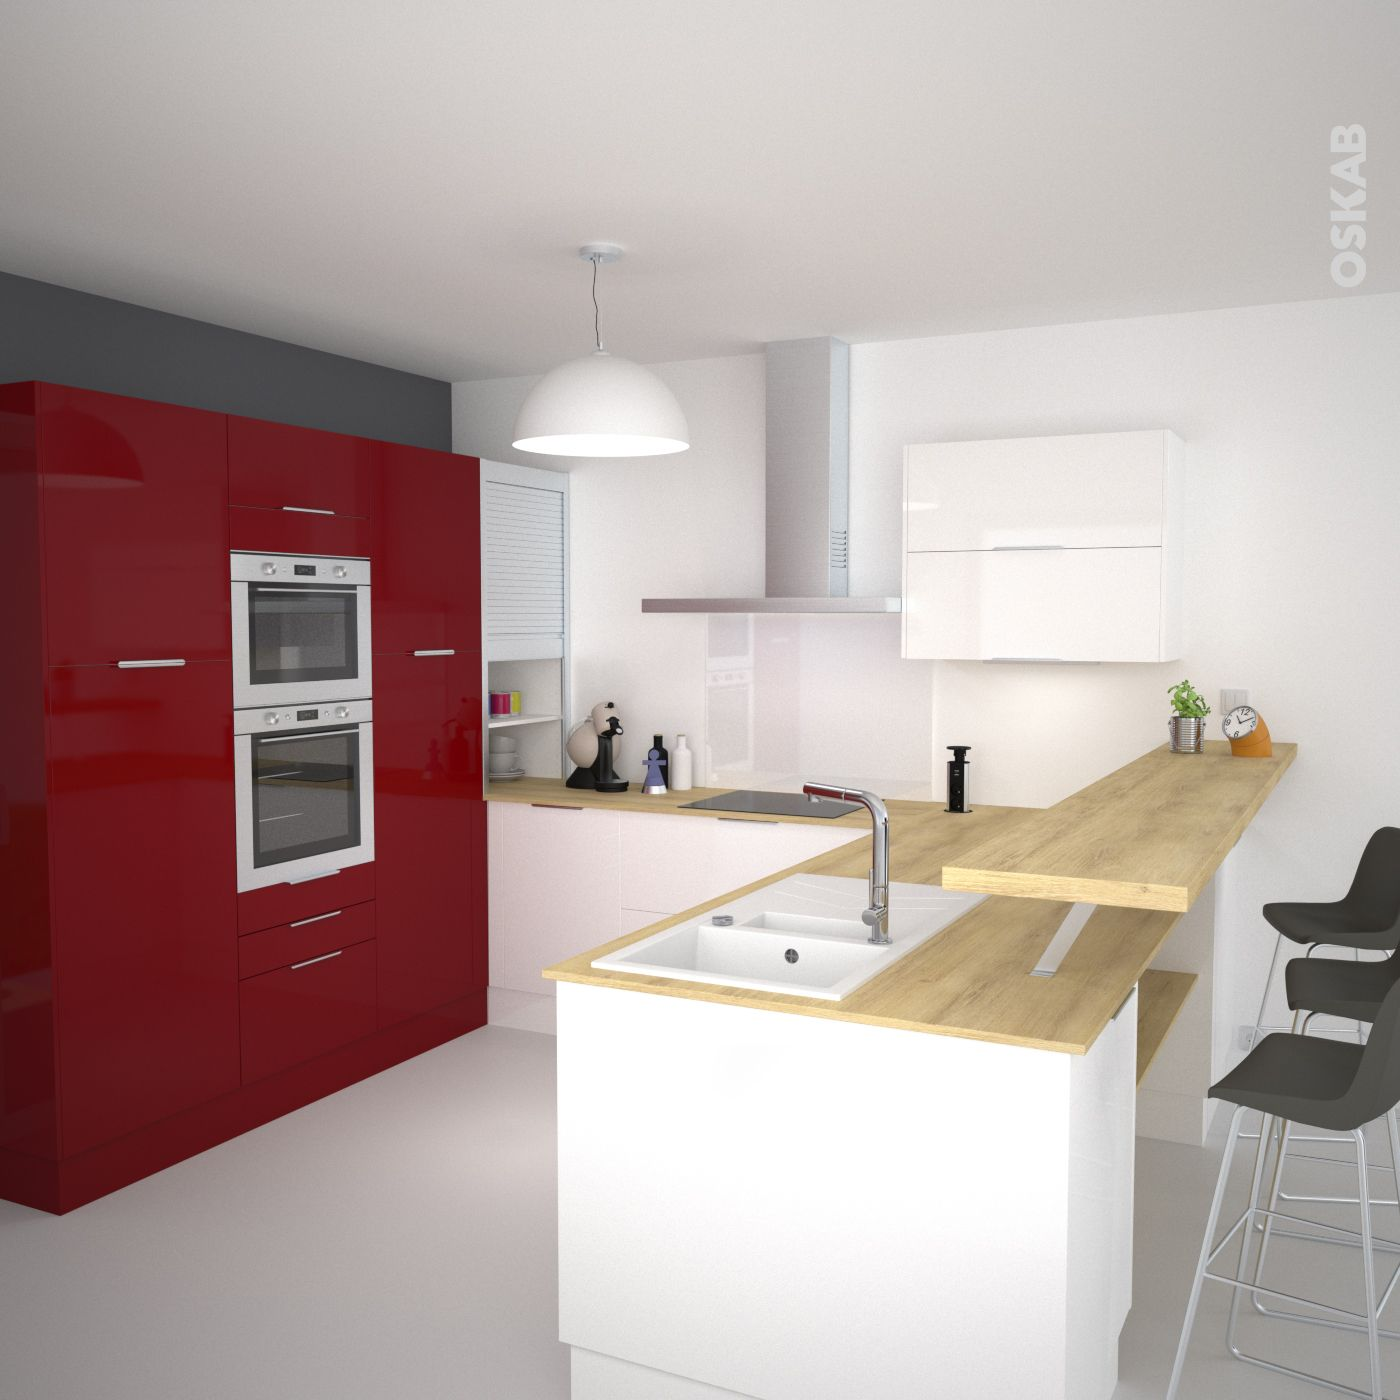 cuisine rouge moderne fa ade stecia rouge brillant apartments kitchens and future. Black Bedroom Furniture Sets. Home Design Ideas